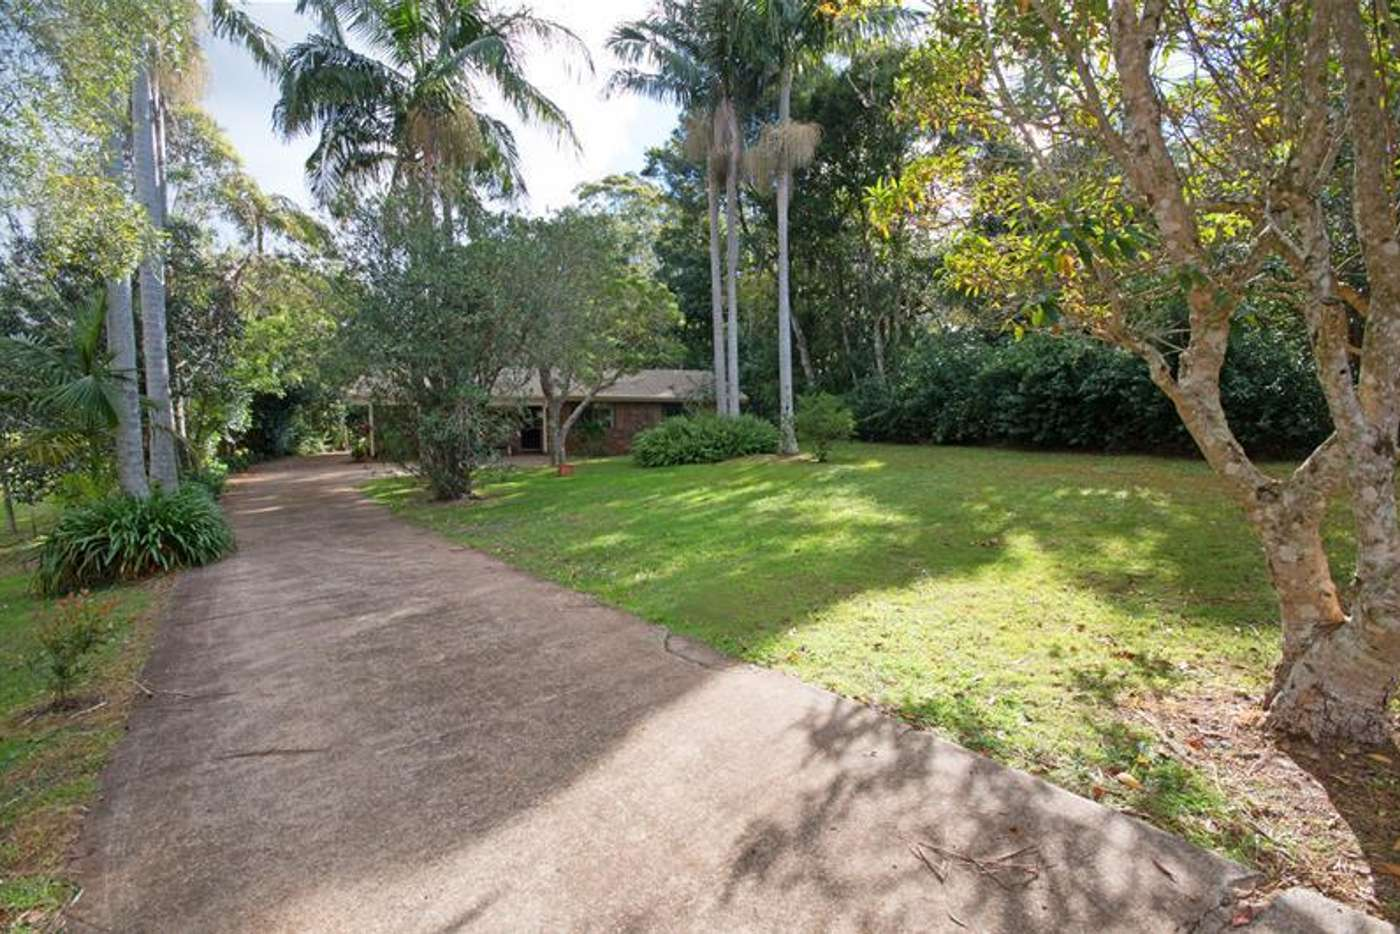 Main view of Homely house listing, 20 Driscoll Lane, Eagle Heights QLD 4271